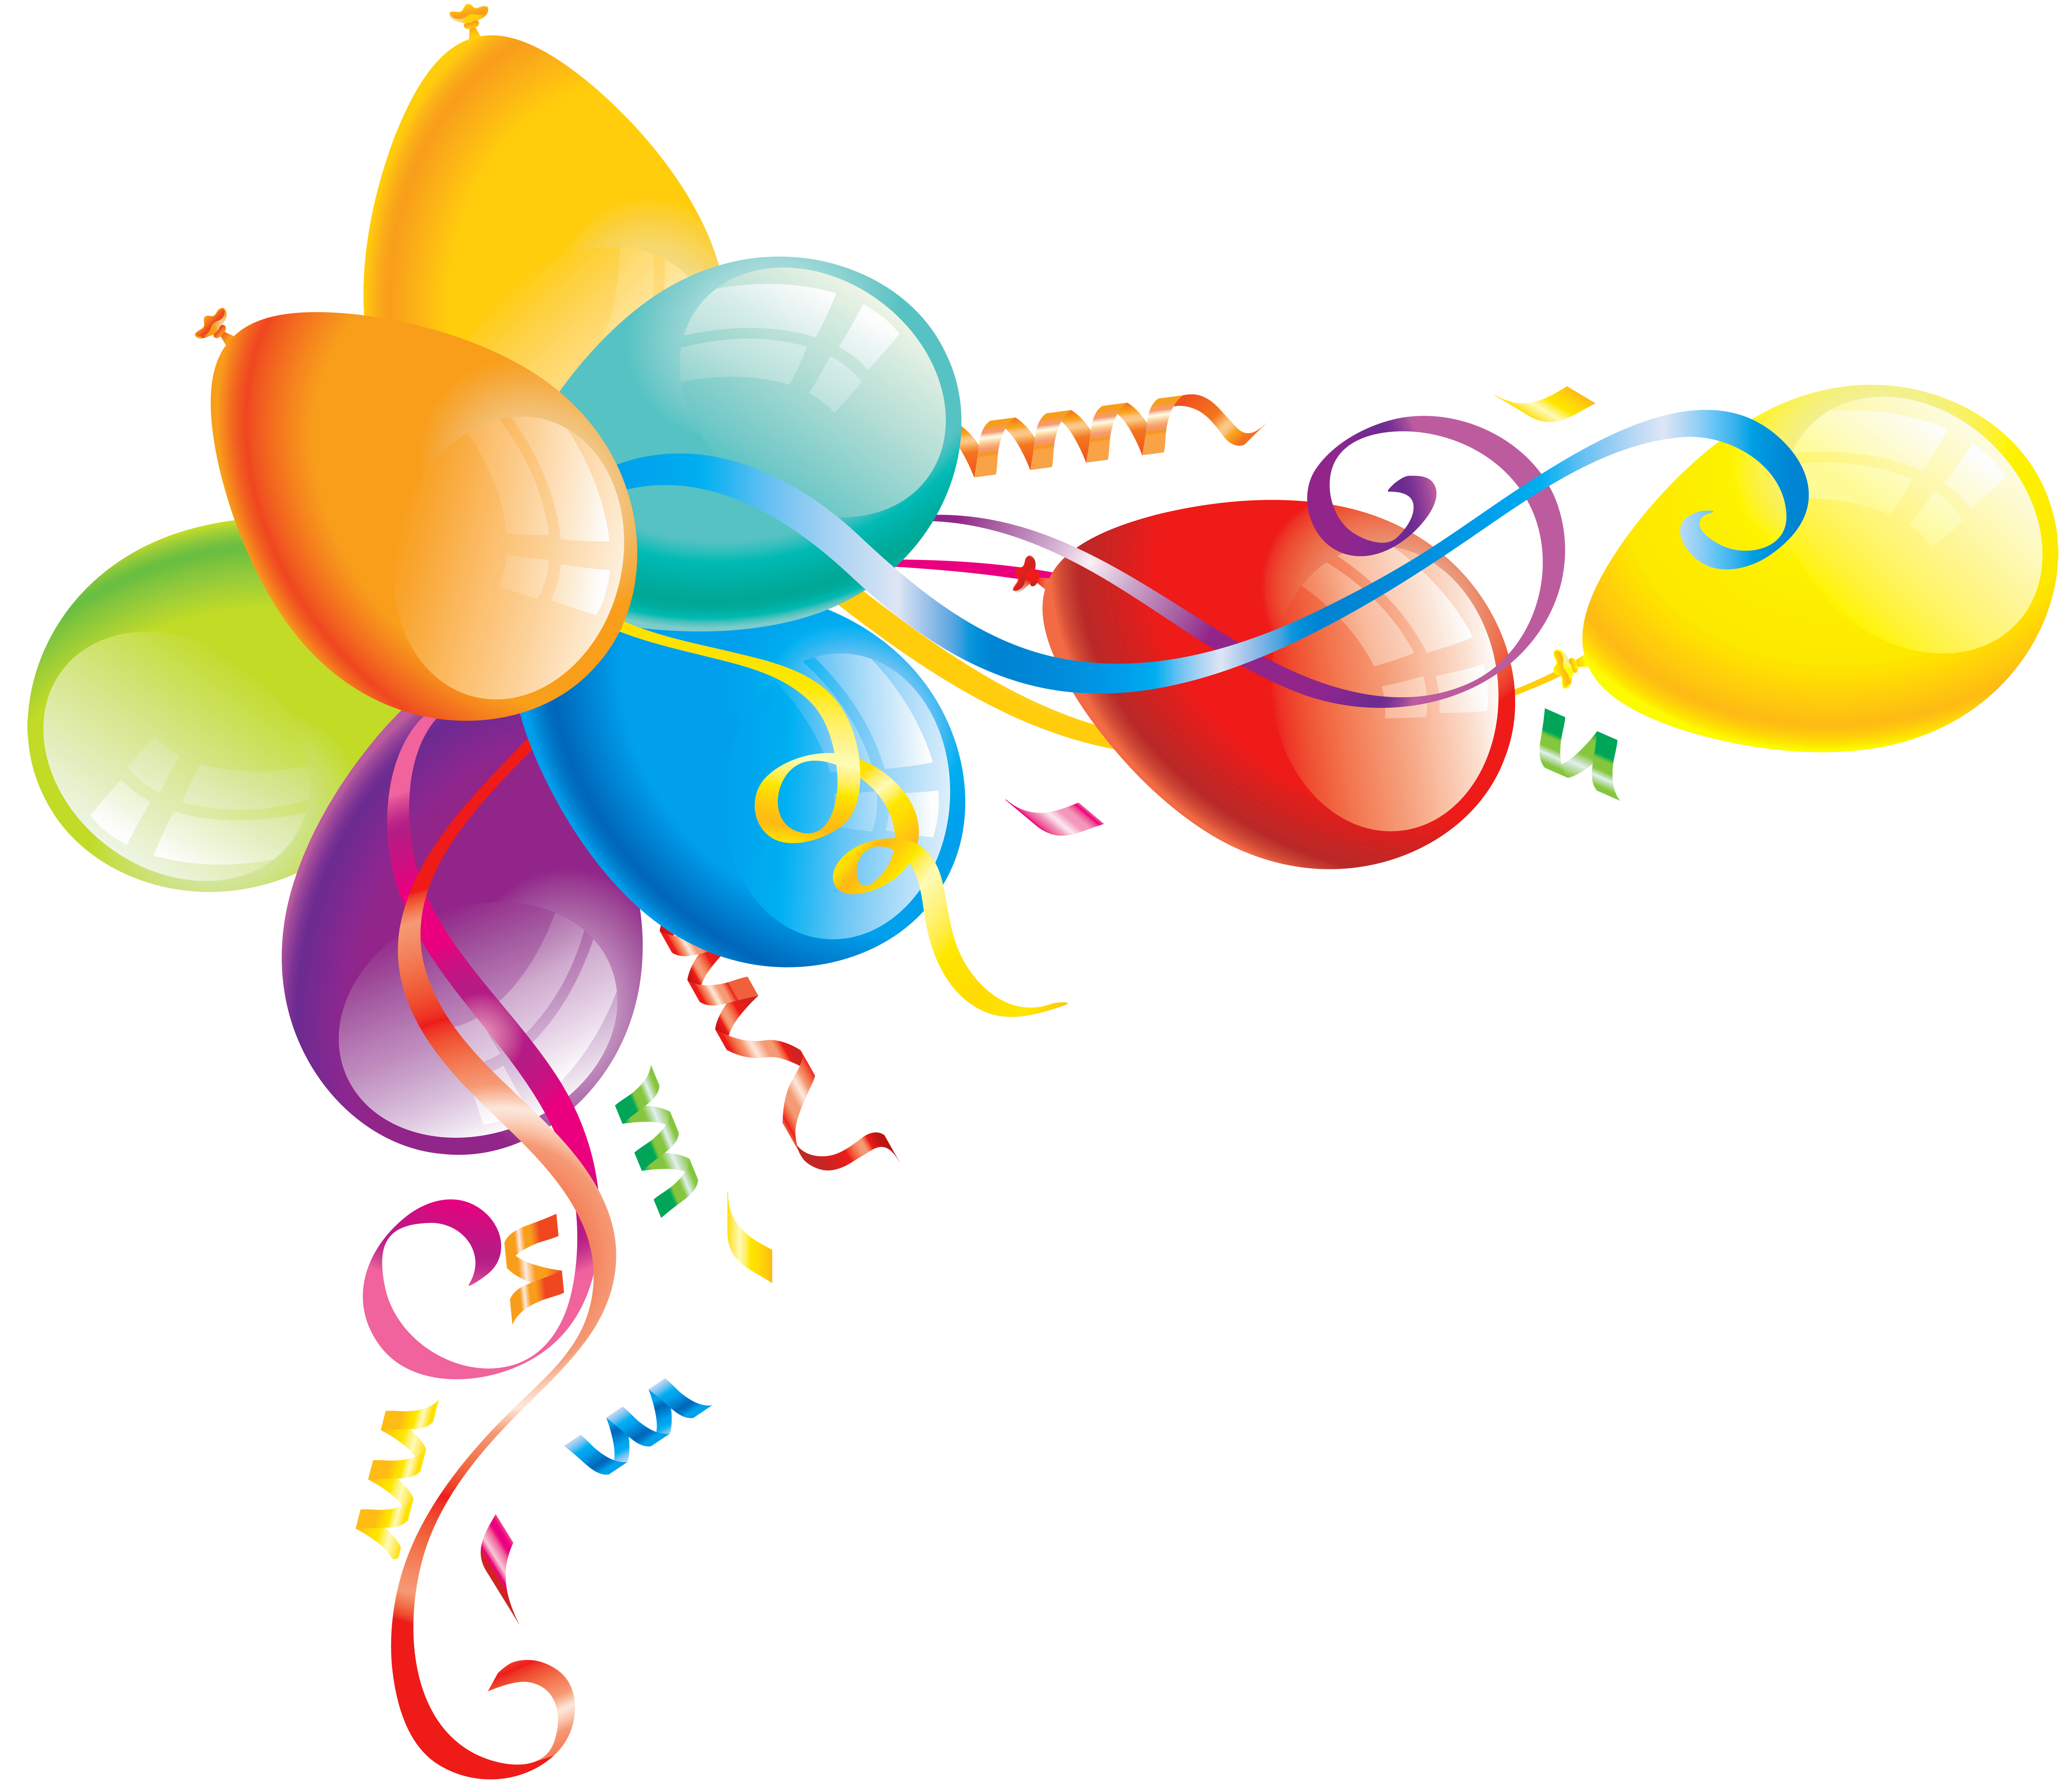 vector royalty free download Balloon clipart. Large transparent balloons gallery.